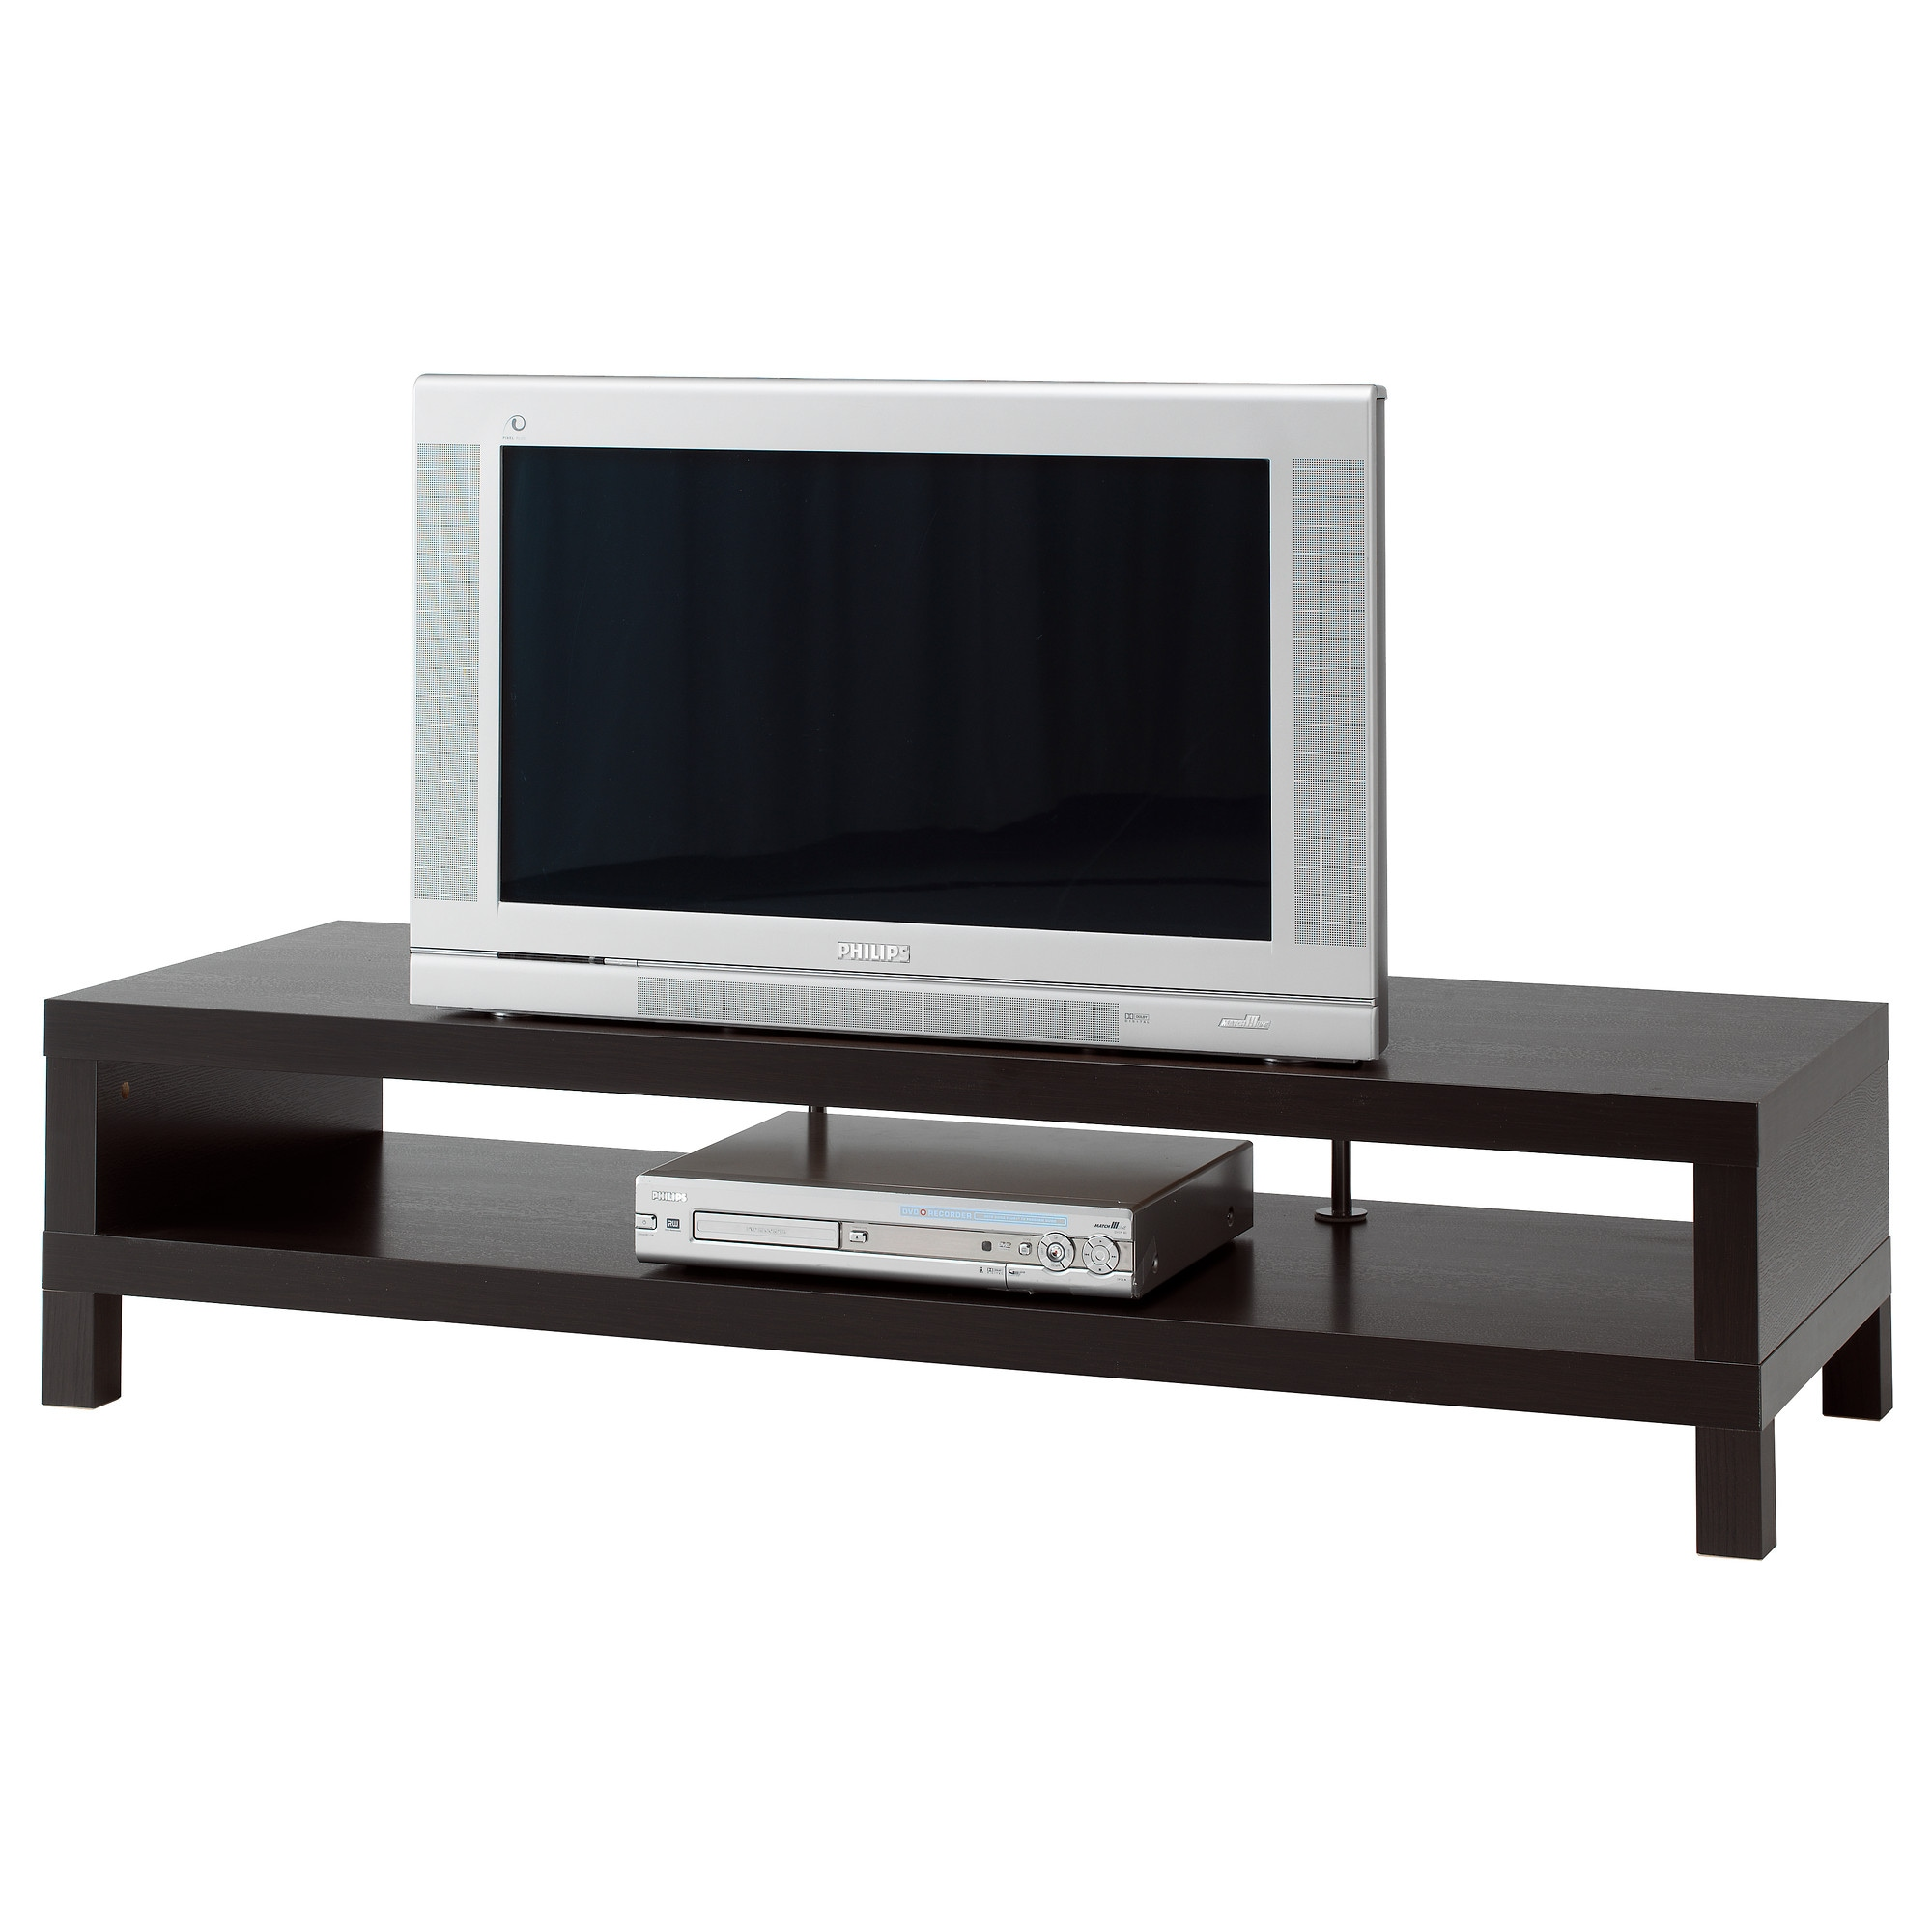 Lack Tv Bench Ikea # But Meuble Tv Noir